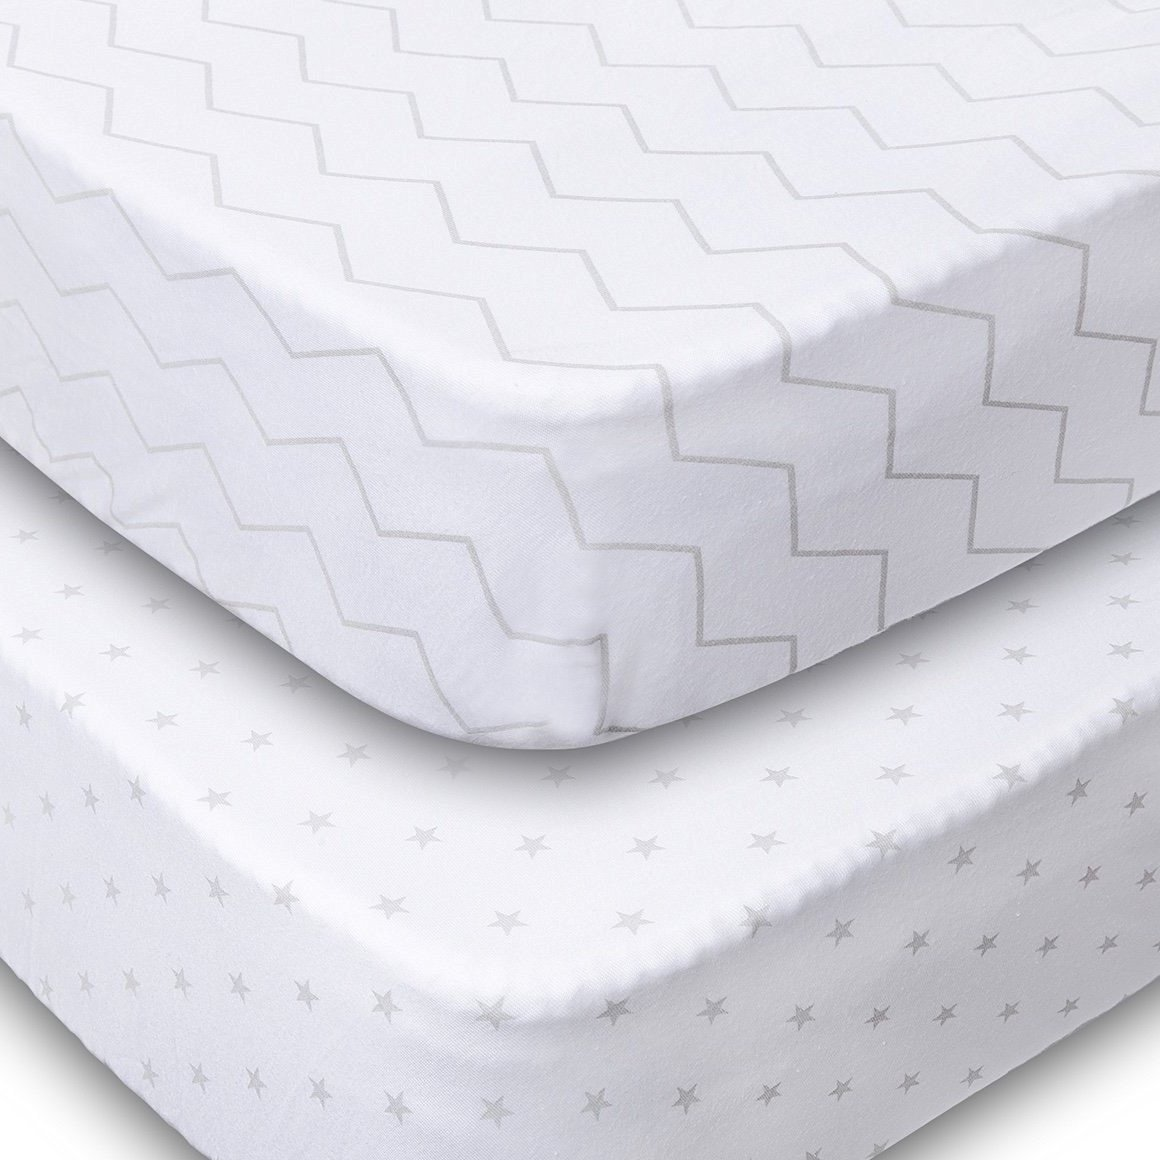 Playard Sheets, 2 Pack Fitted Soft Jersey Cotton Chevron & Star Playpen Bedding